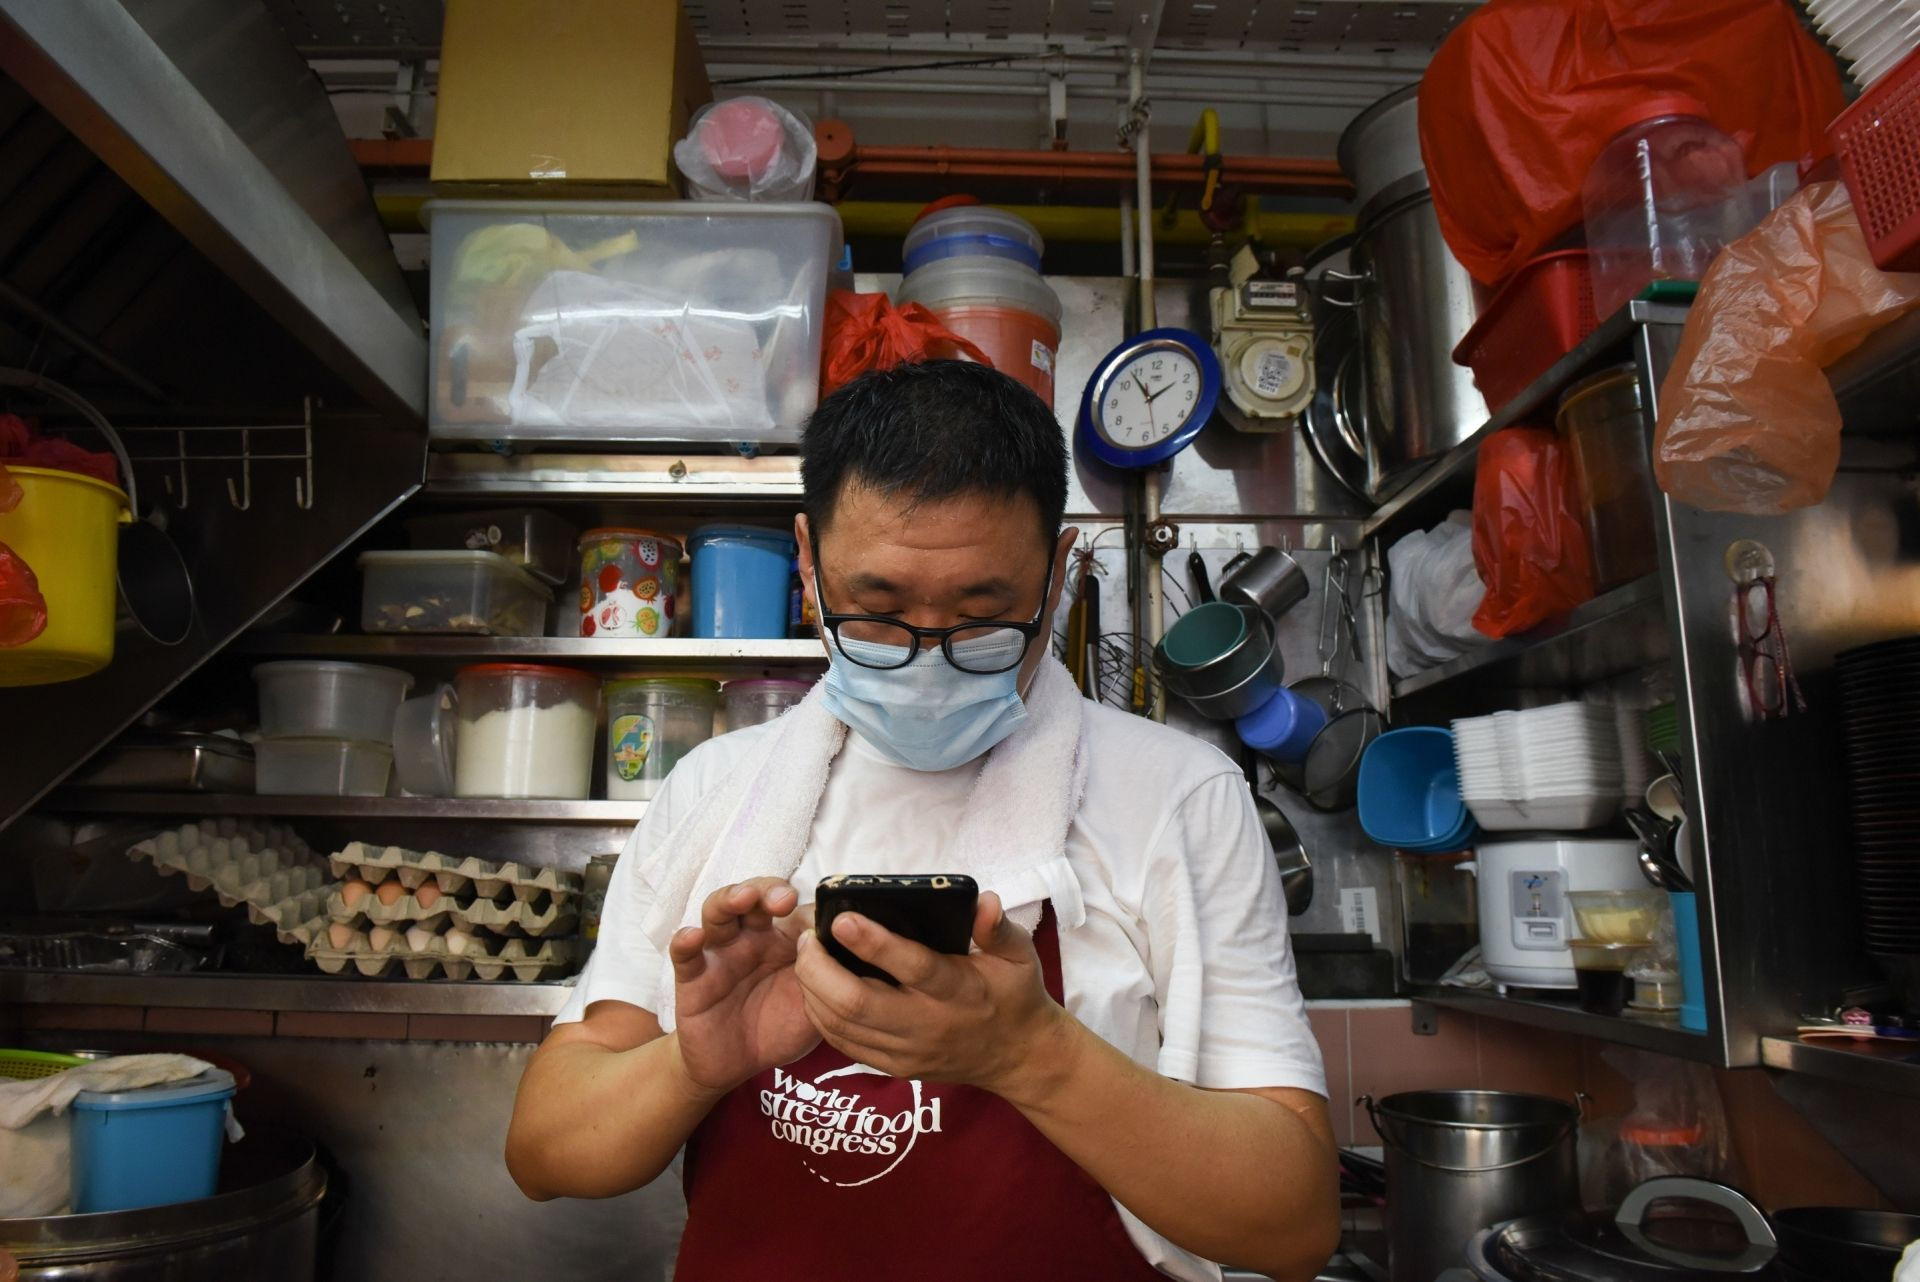 This photo taken on April 21, 2020 shows Melvin Chew scrolling through his phone at his small food stall, as the business has moved to delivery only due to the COVID-19 coronavirus outbreak in Singapore. - From Facebook groups to hyper-local delivery services, Southeast Asia's street food chefs are cooking up creative ways to sell their wares as they struggle to survive amid the coronavirus pandemic. (Photo by Catherine LAI / AFP)